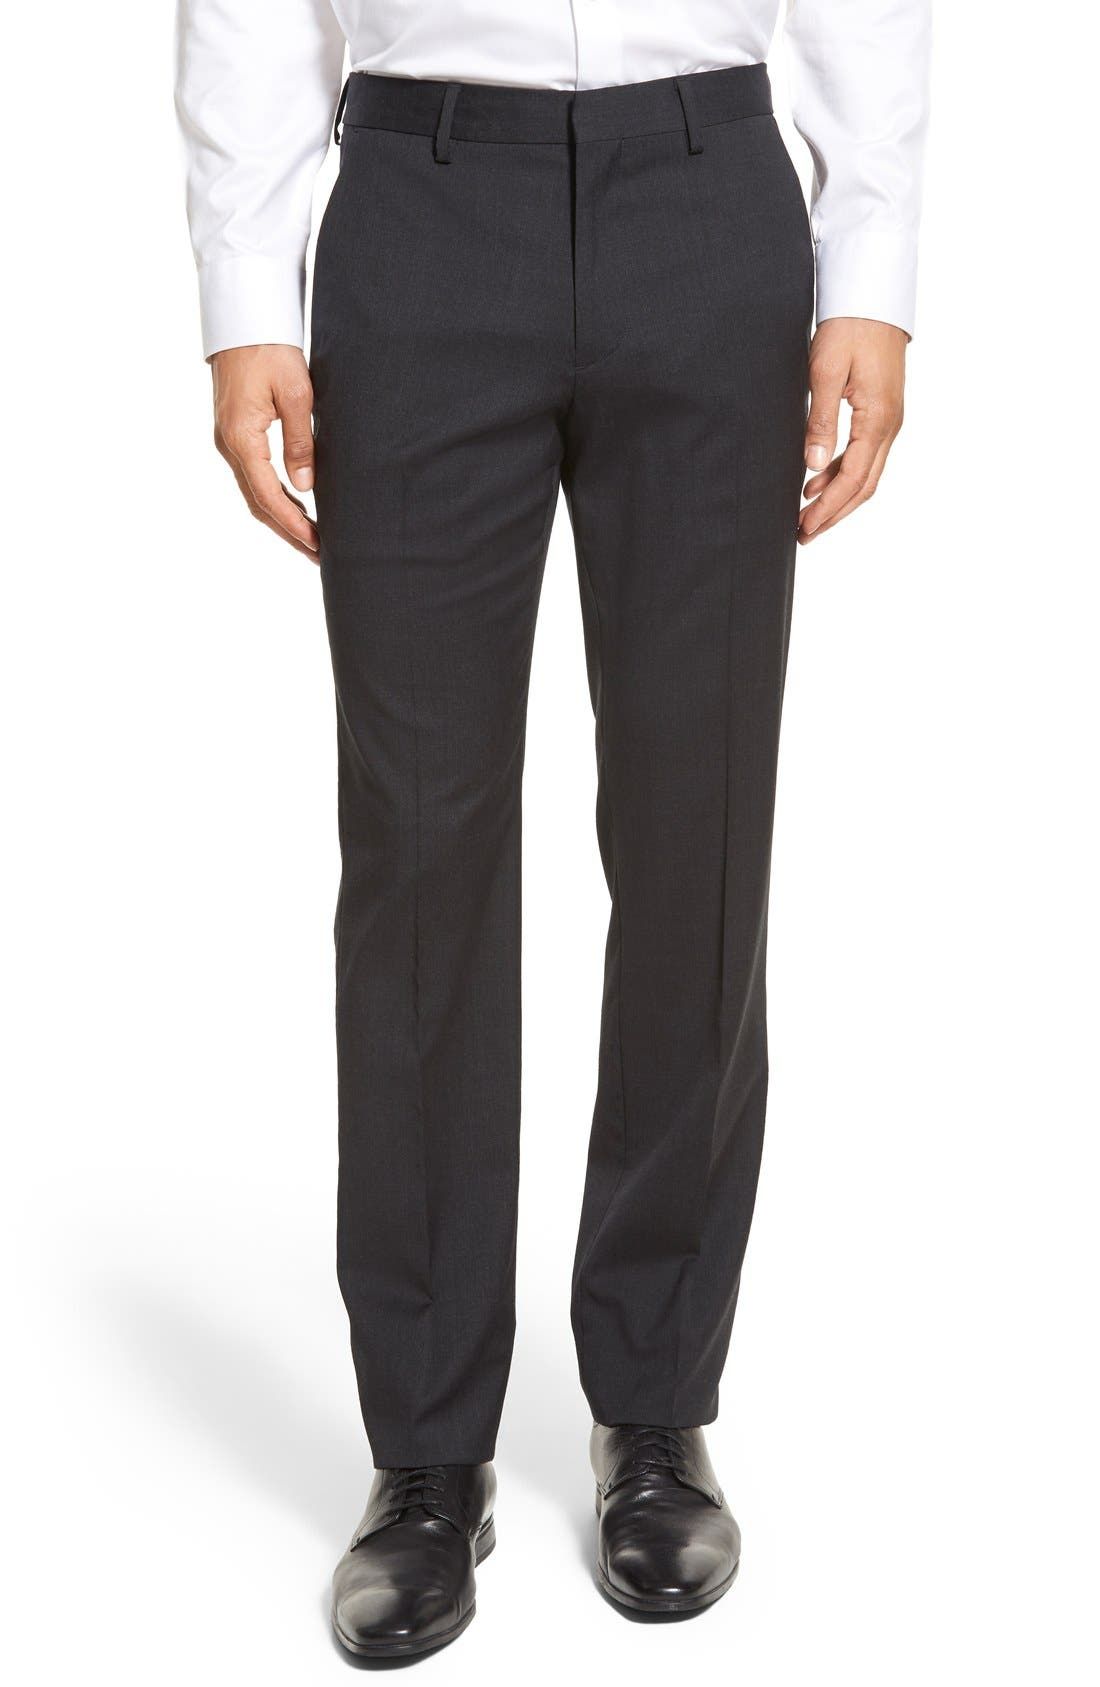 Bonobos Jetsetter Slim Fit Flat Front Solid Stretch Wool Trousers